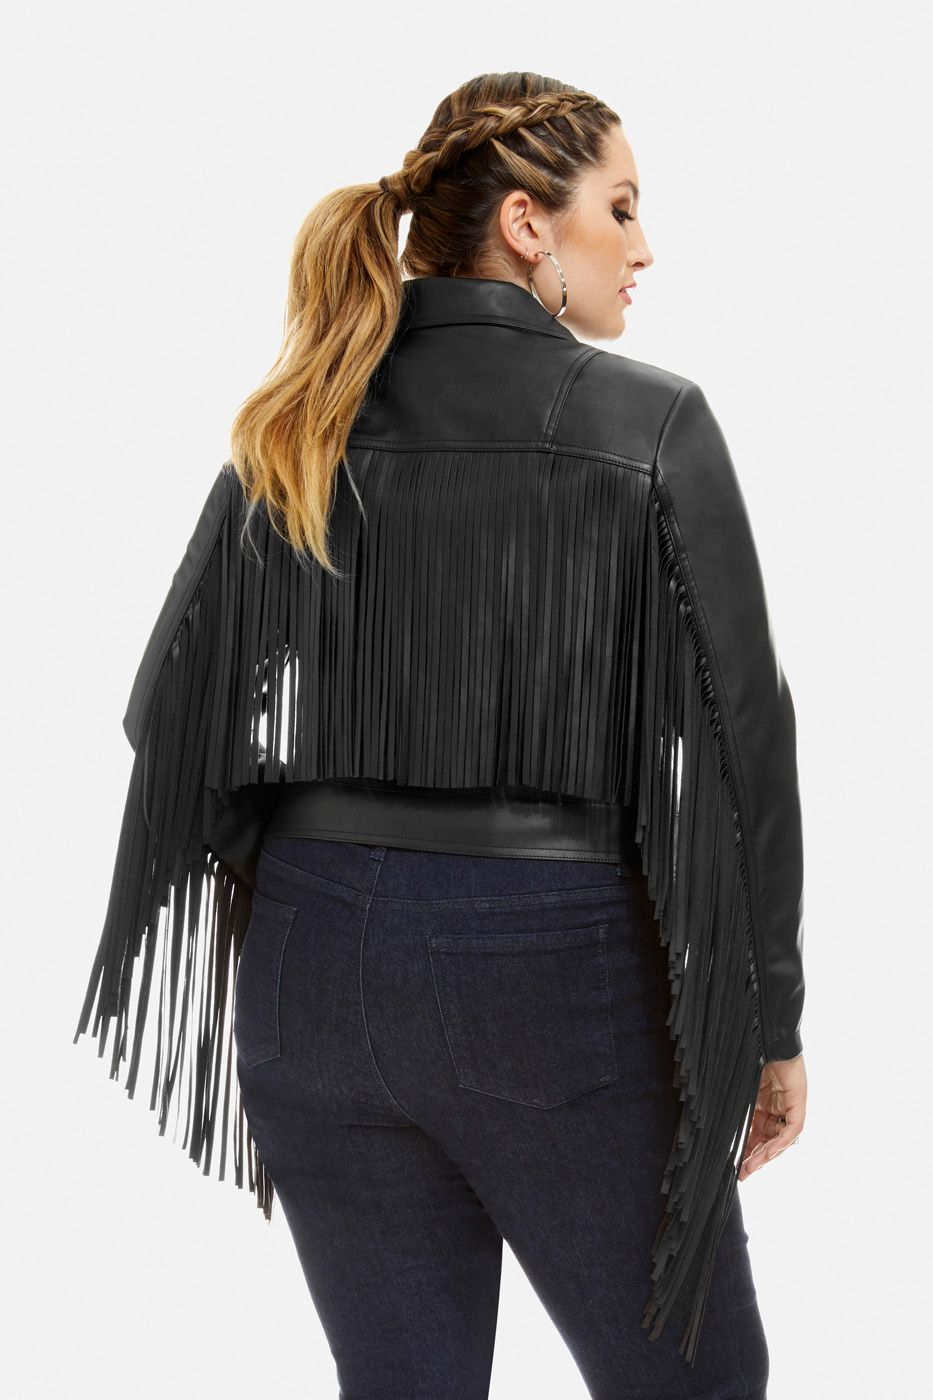 a8a84f66a4ef2 Plus Size Carolina Faux-Leather Fringe Moto Jacket size 3